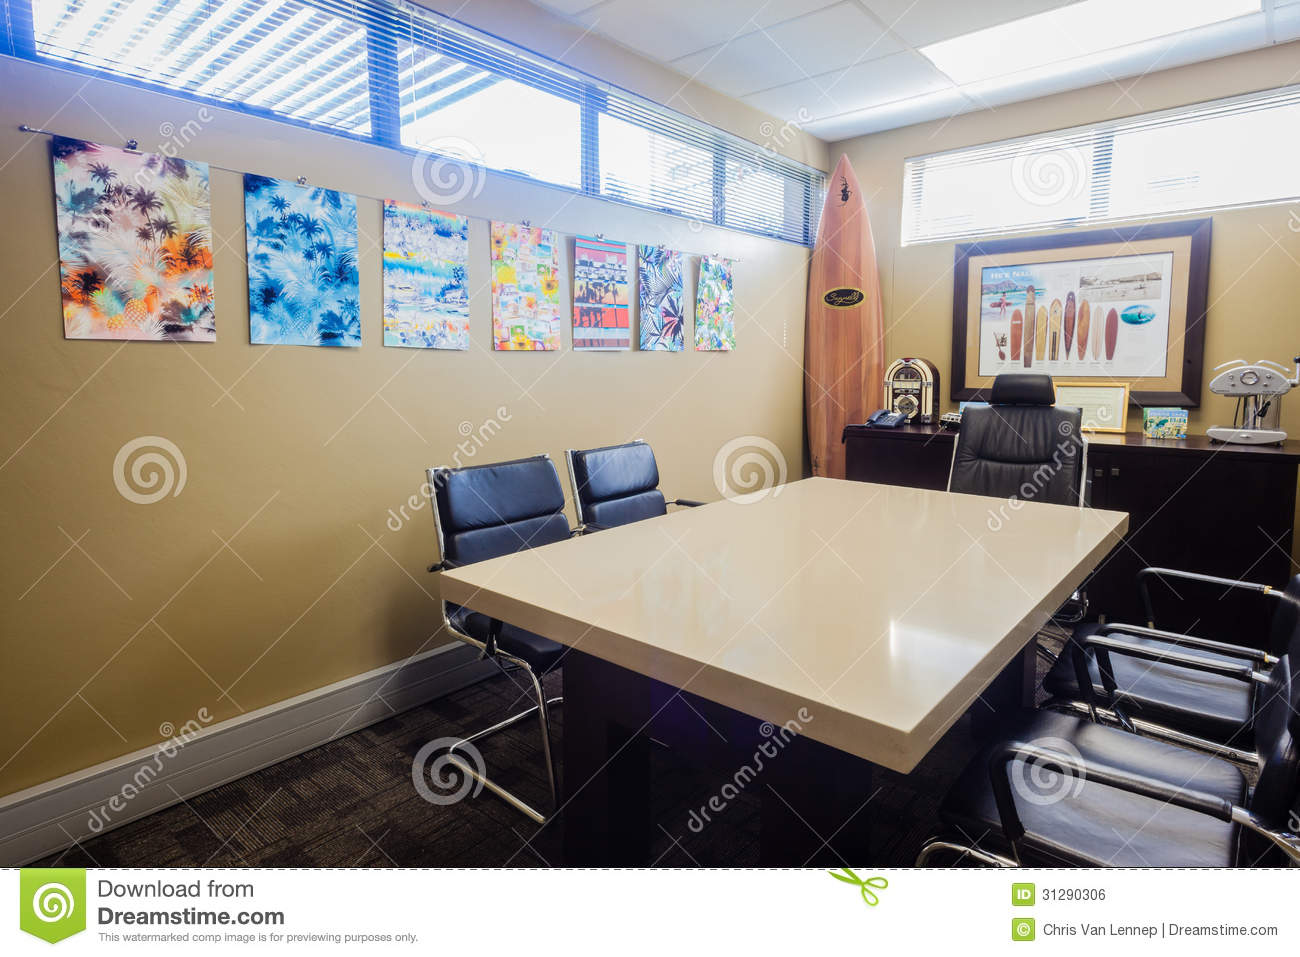 architecture simple office room office space architects clients meeting room desk editorial photo image of